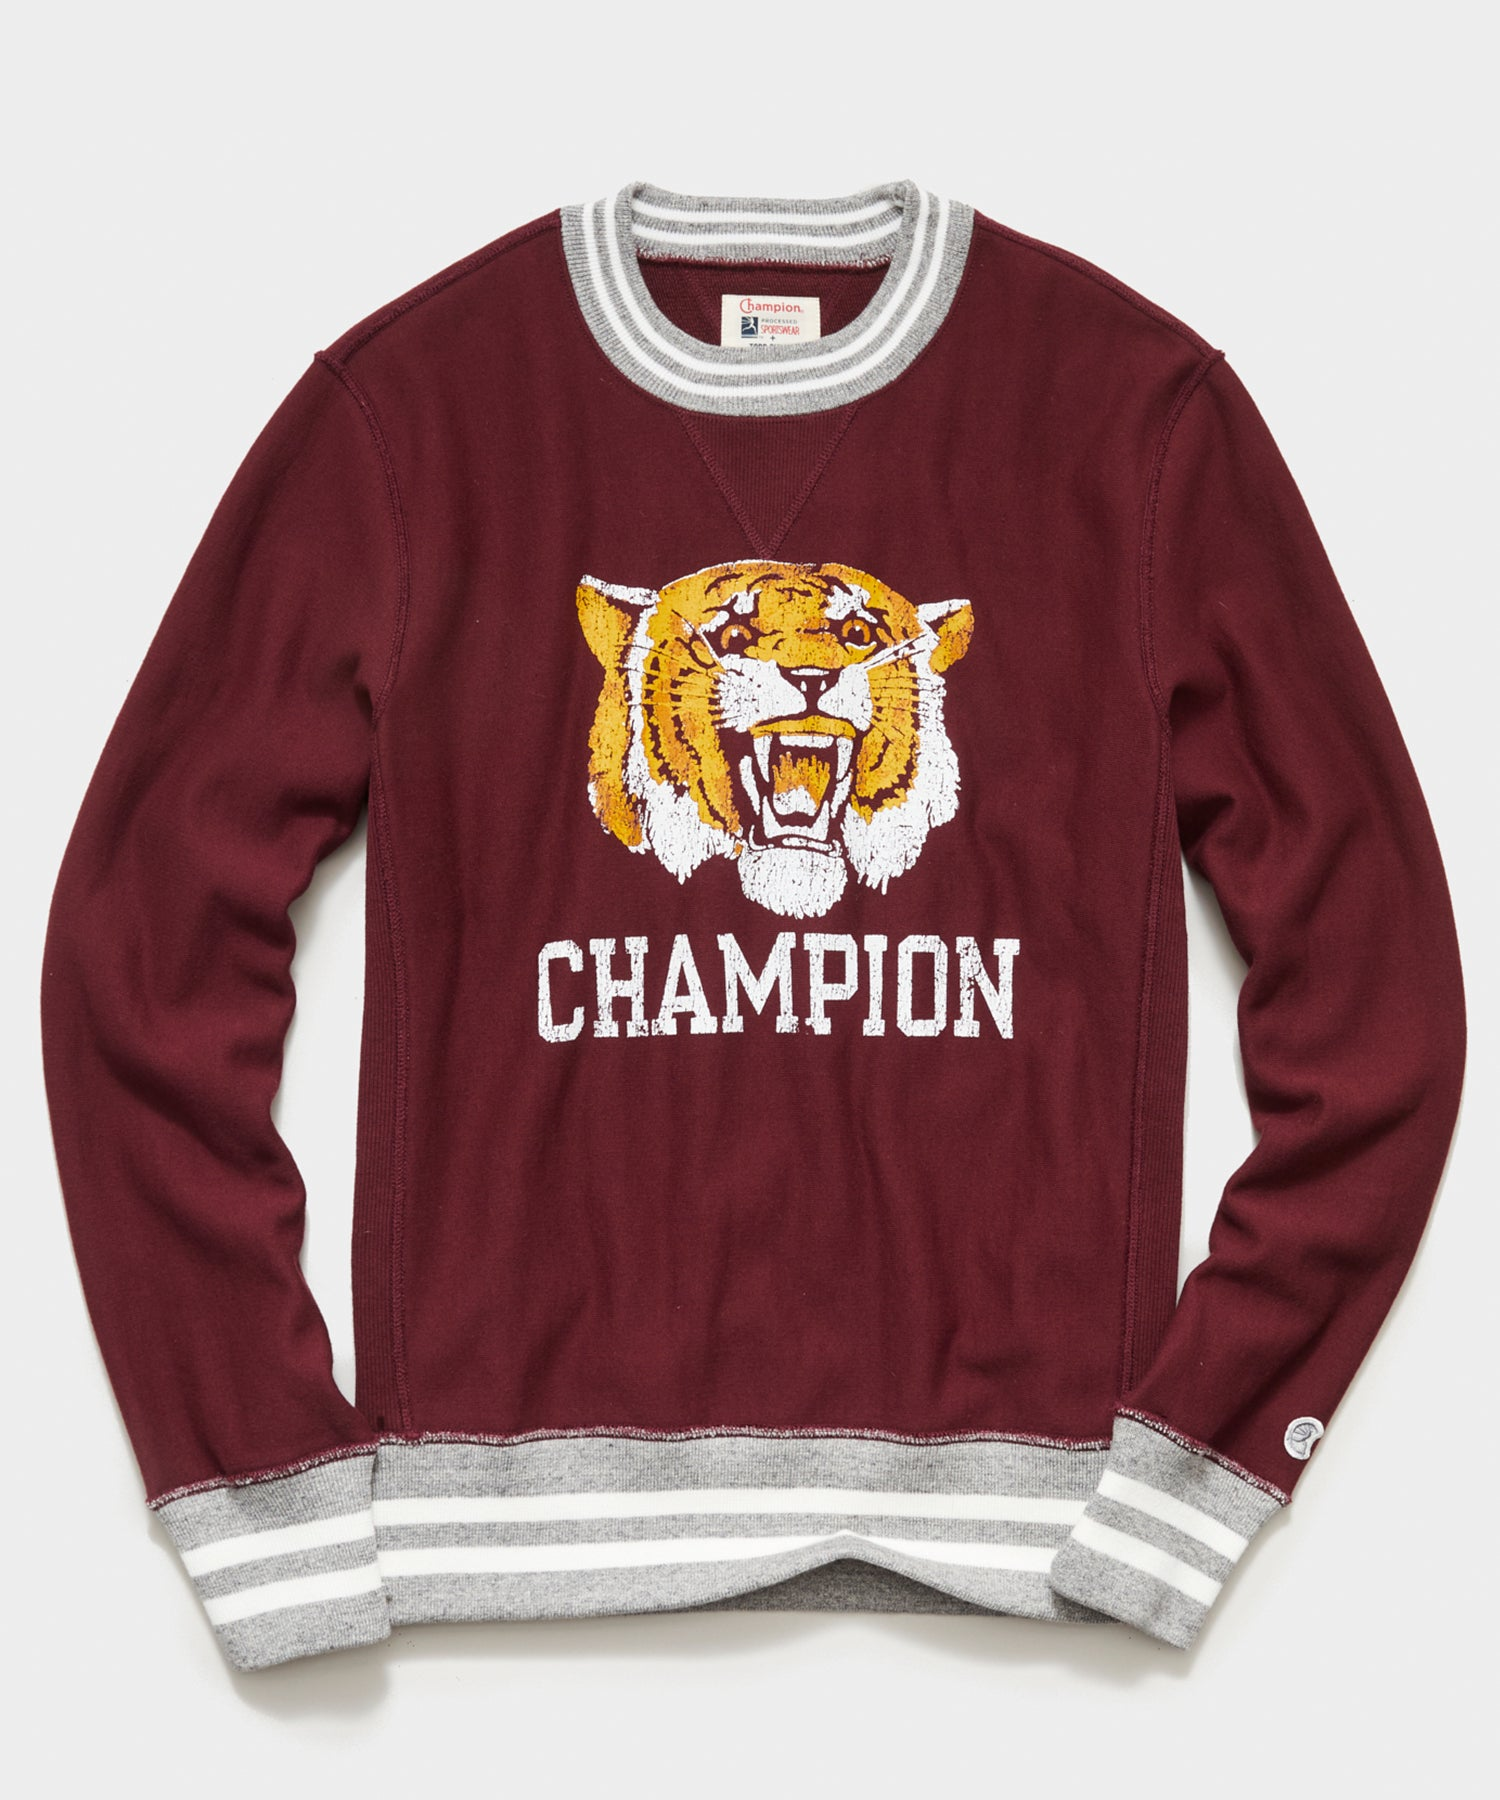 Champion Tiger Sweatshirt in Wine Stain